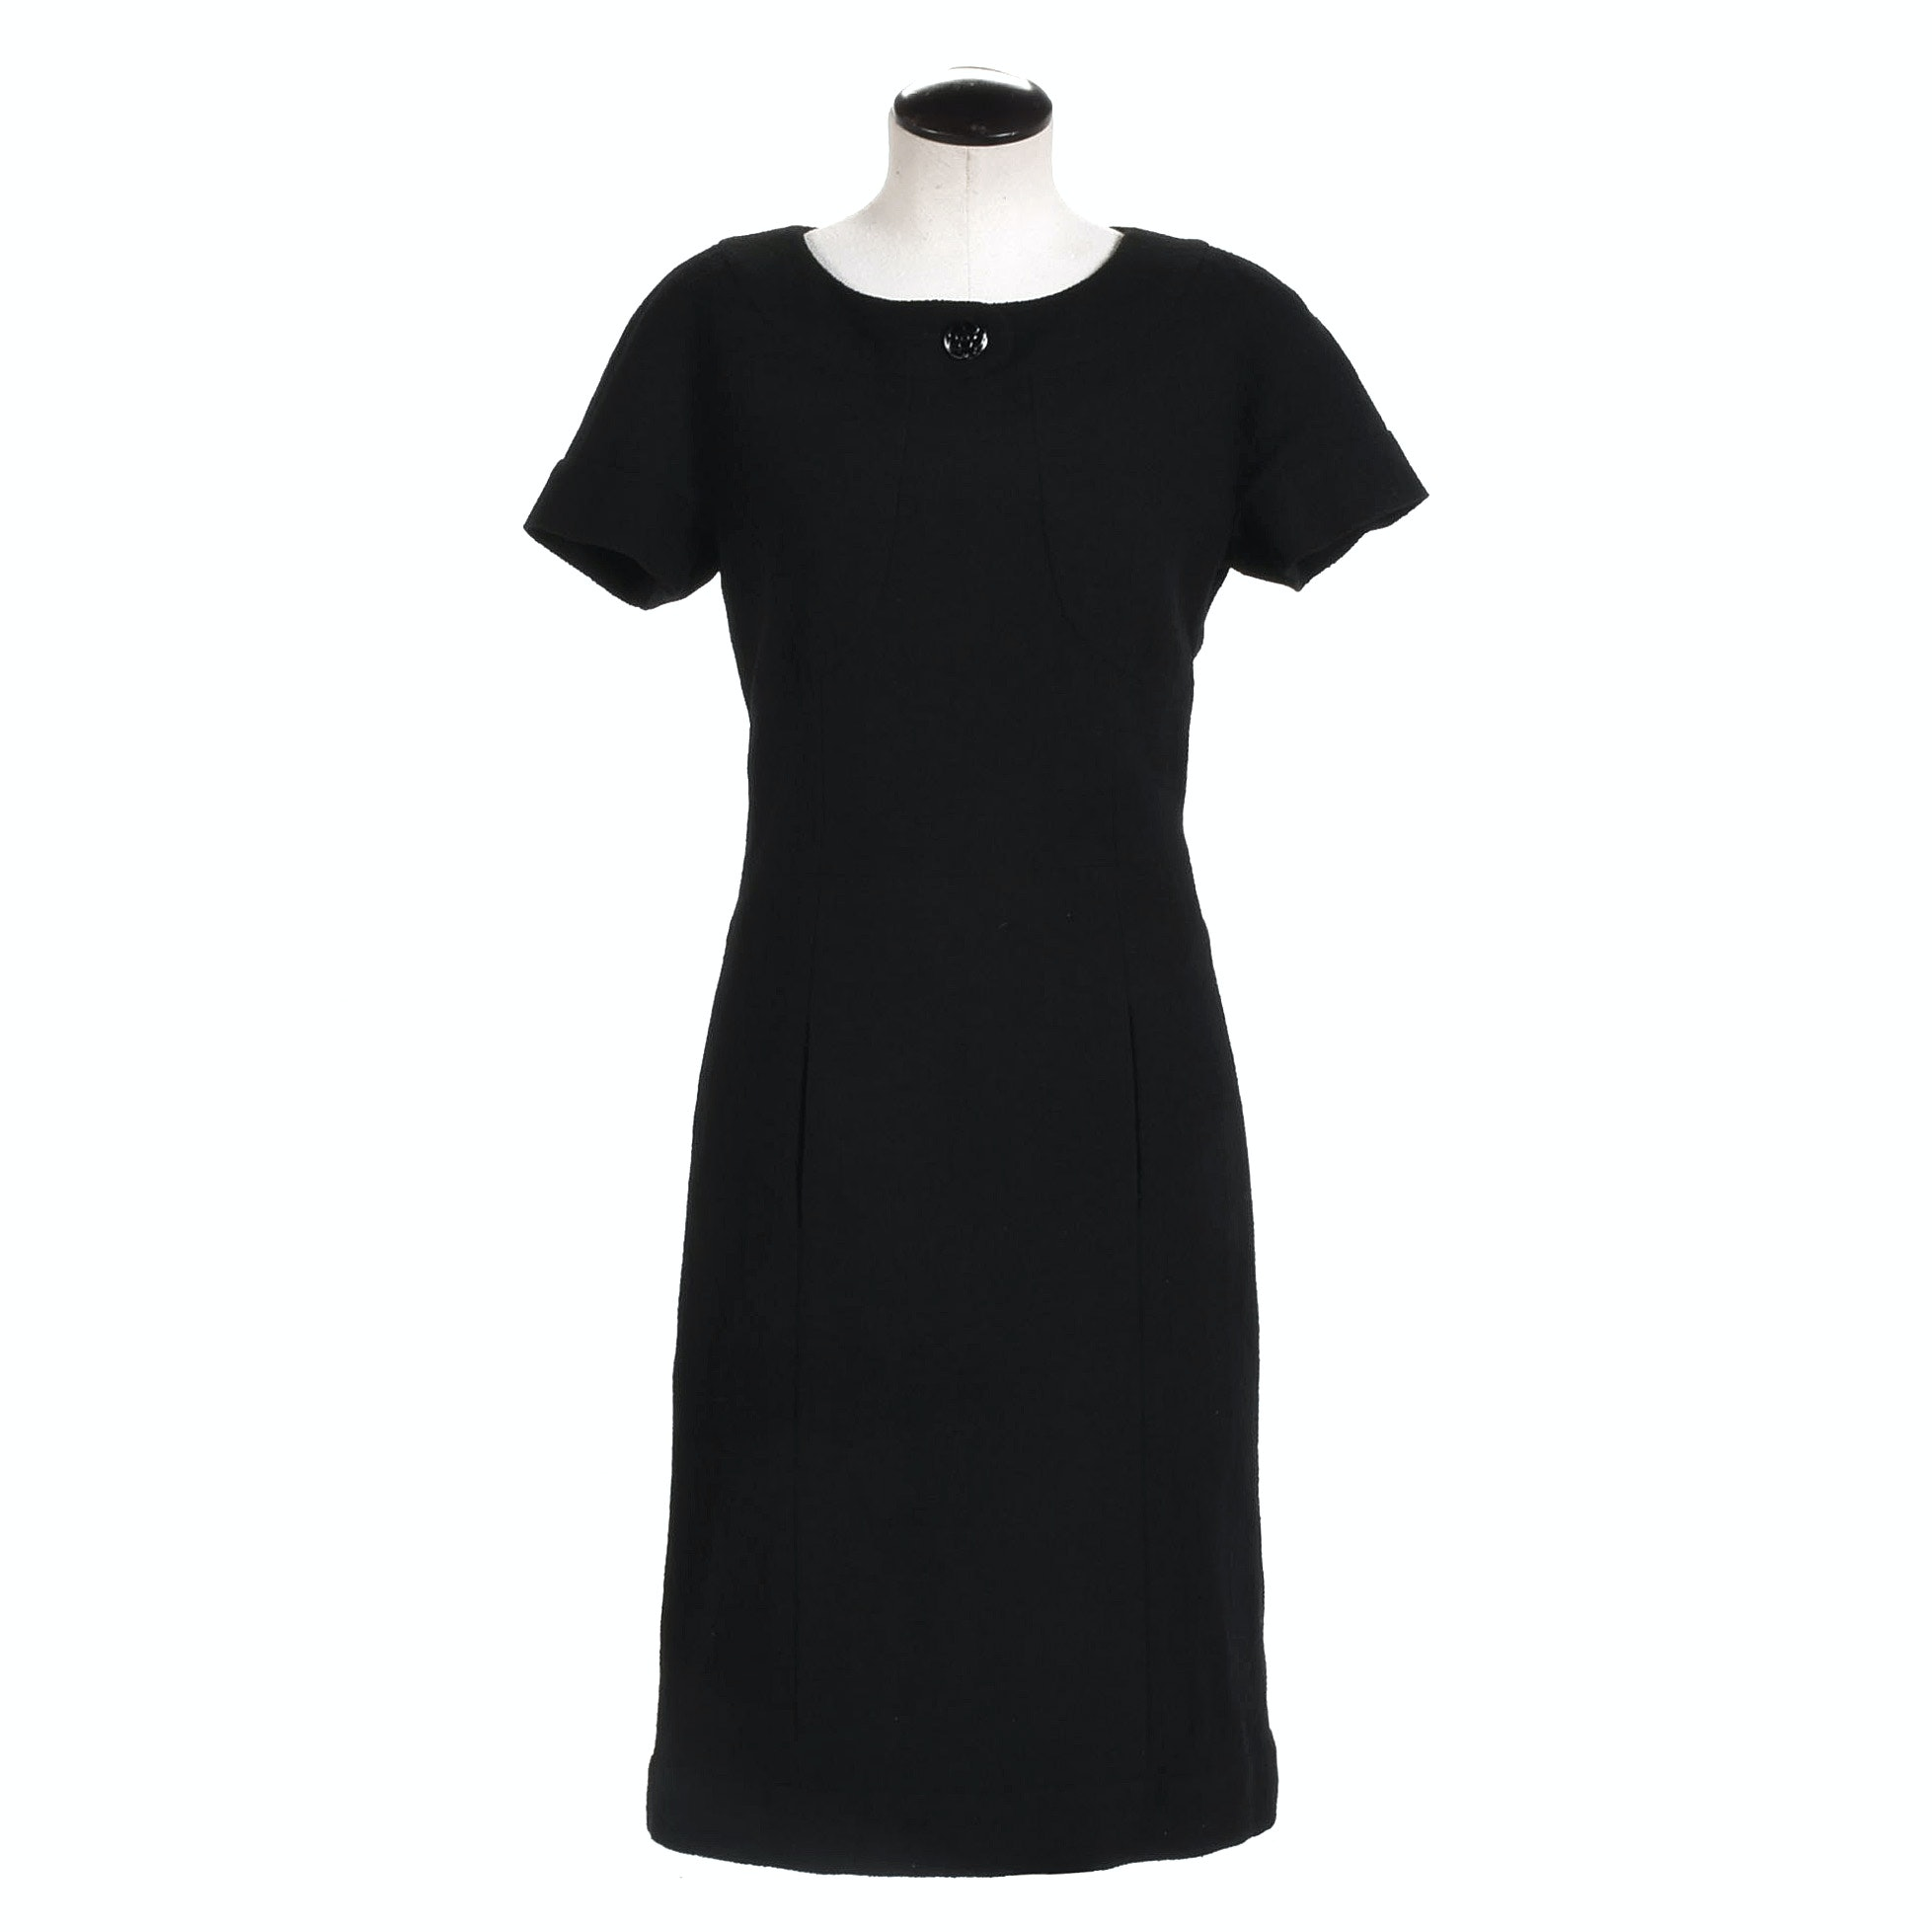 Chanel Black Bouclé Knit Dress, Made in France